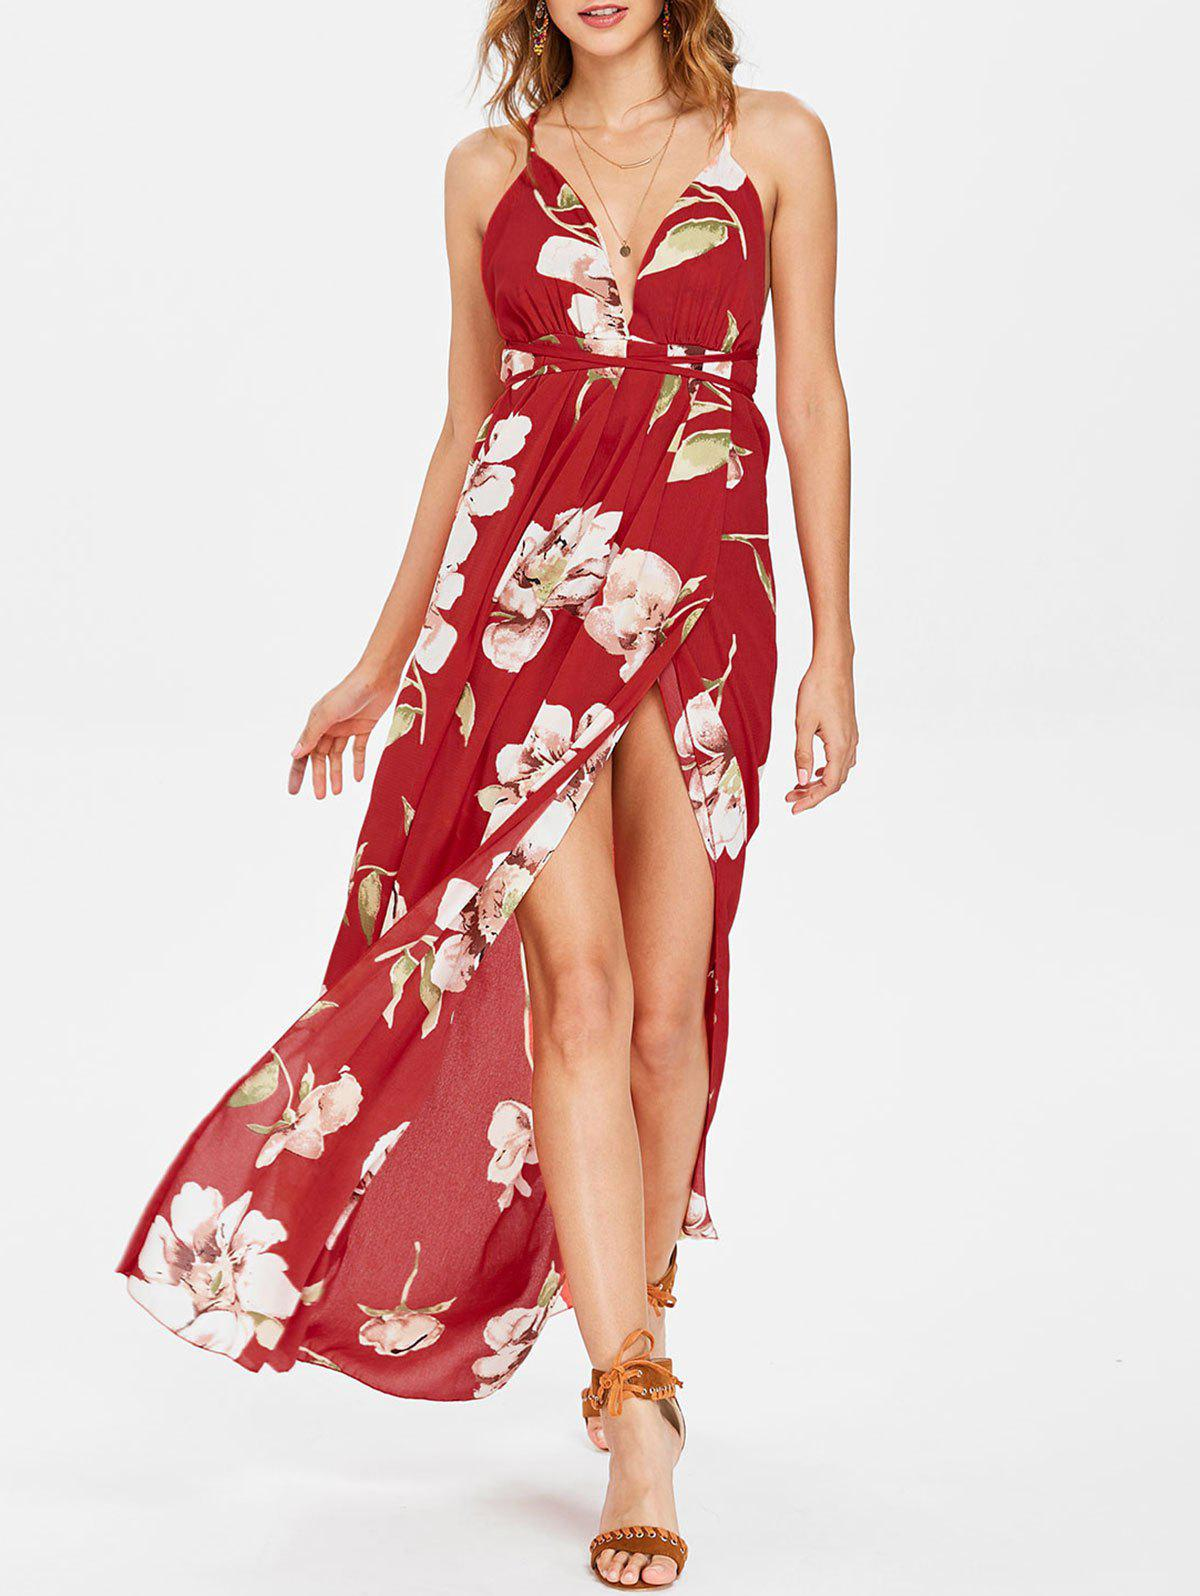 Flower Printed Low Cut Maxi Dress табурет basiс plus kettler